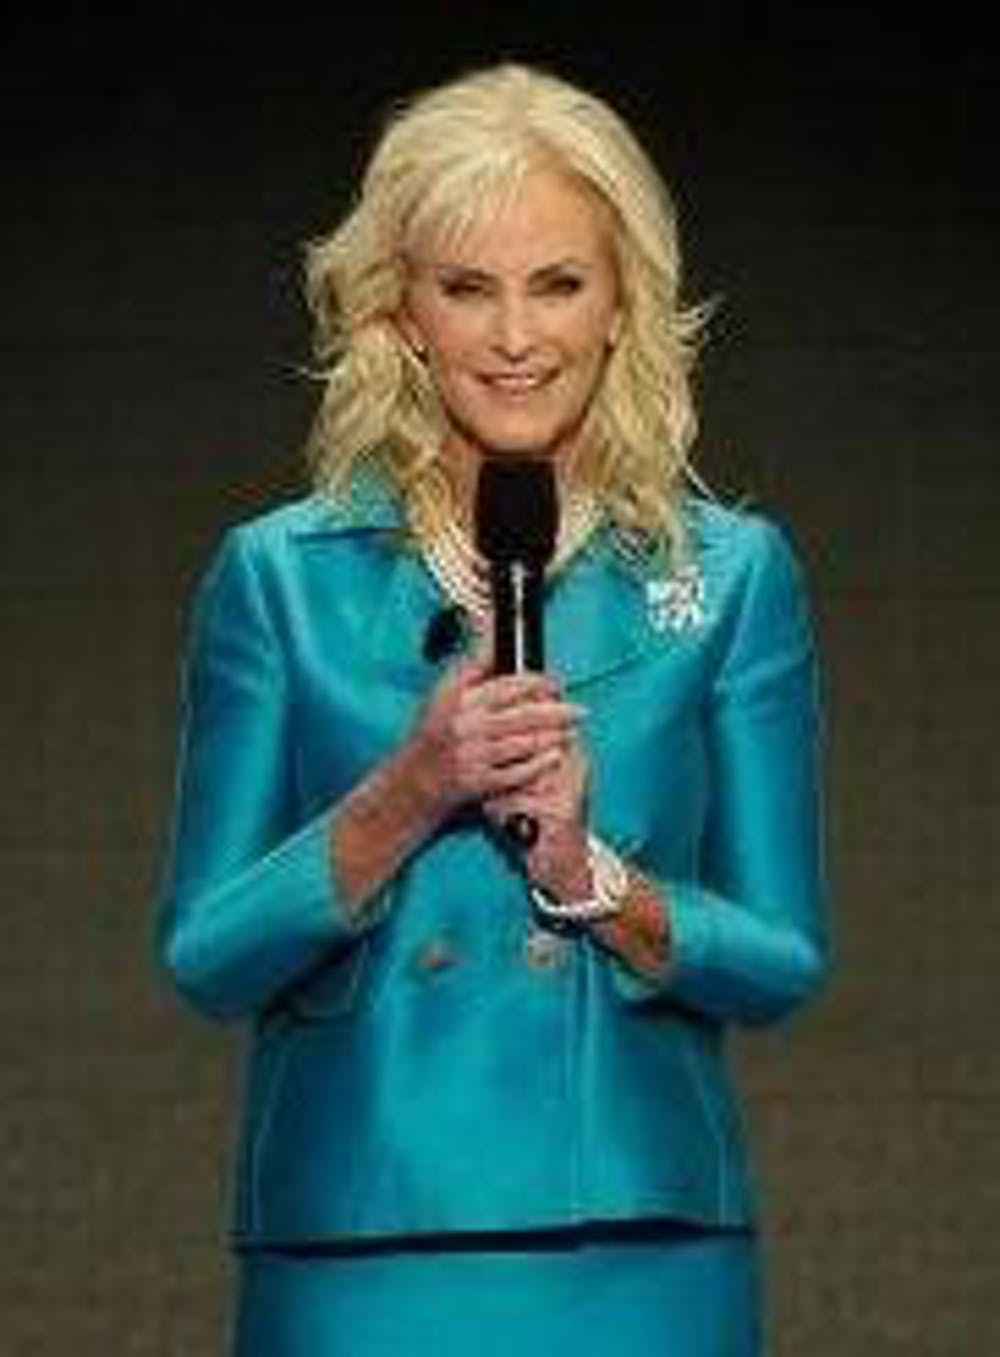 800px-cindy_mccain_speaks_at_rnc_2008